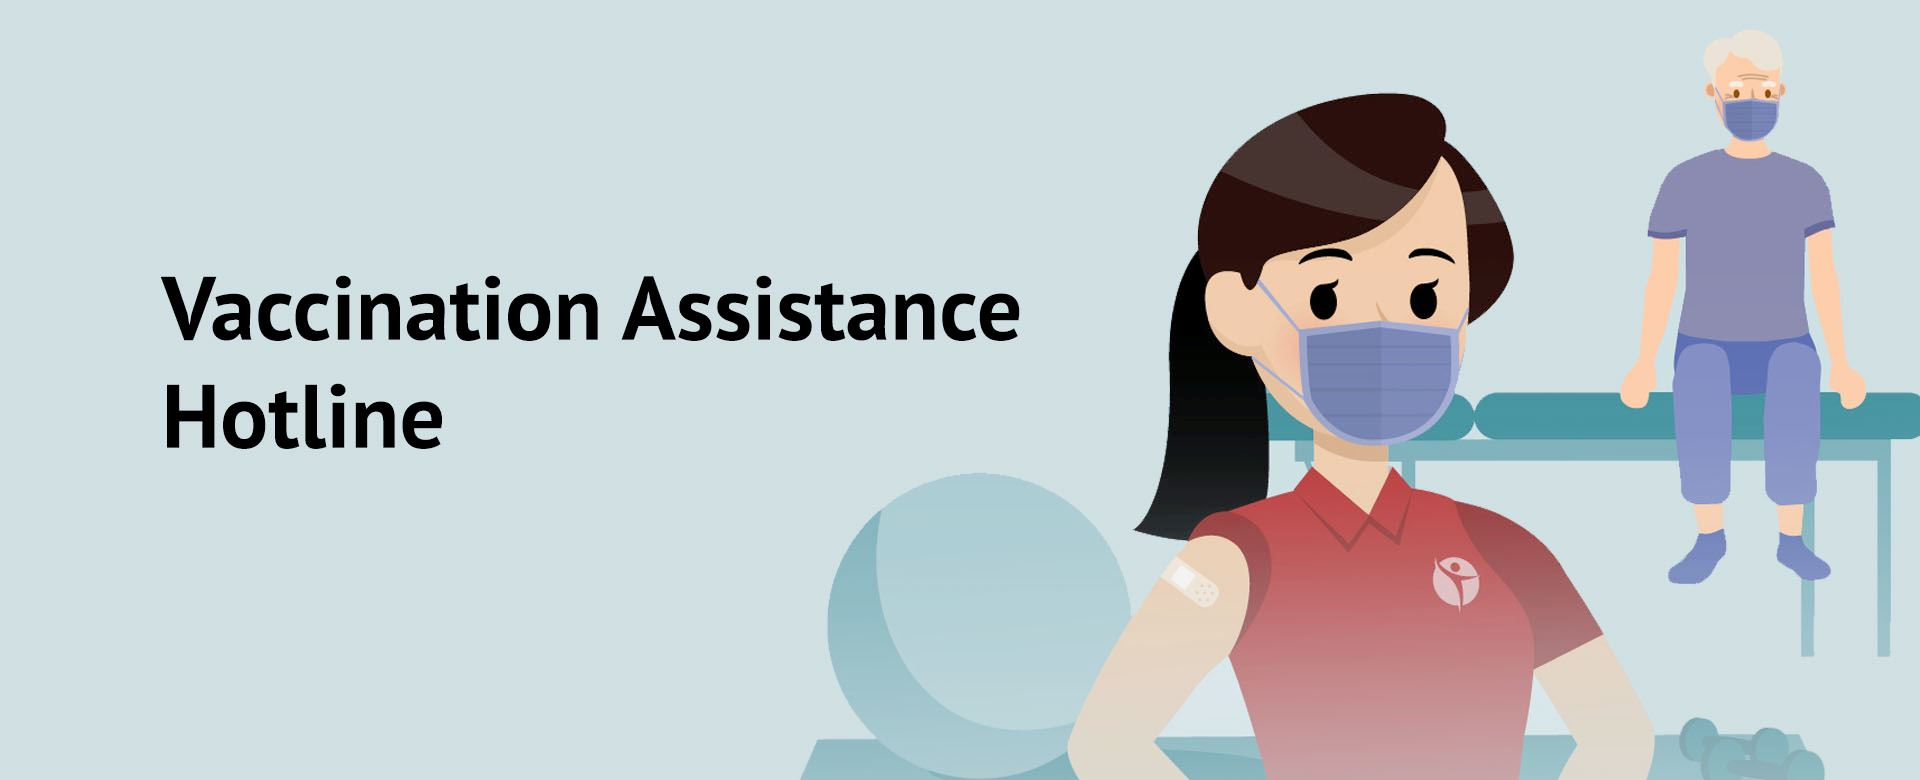 Vaccination Assistance Hotline